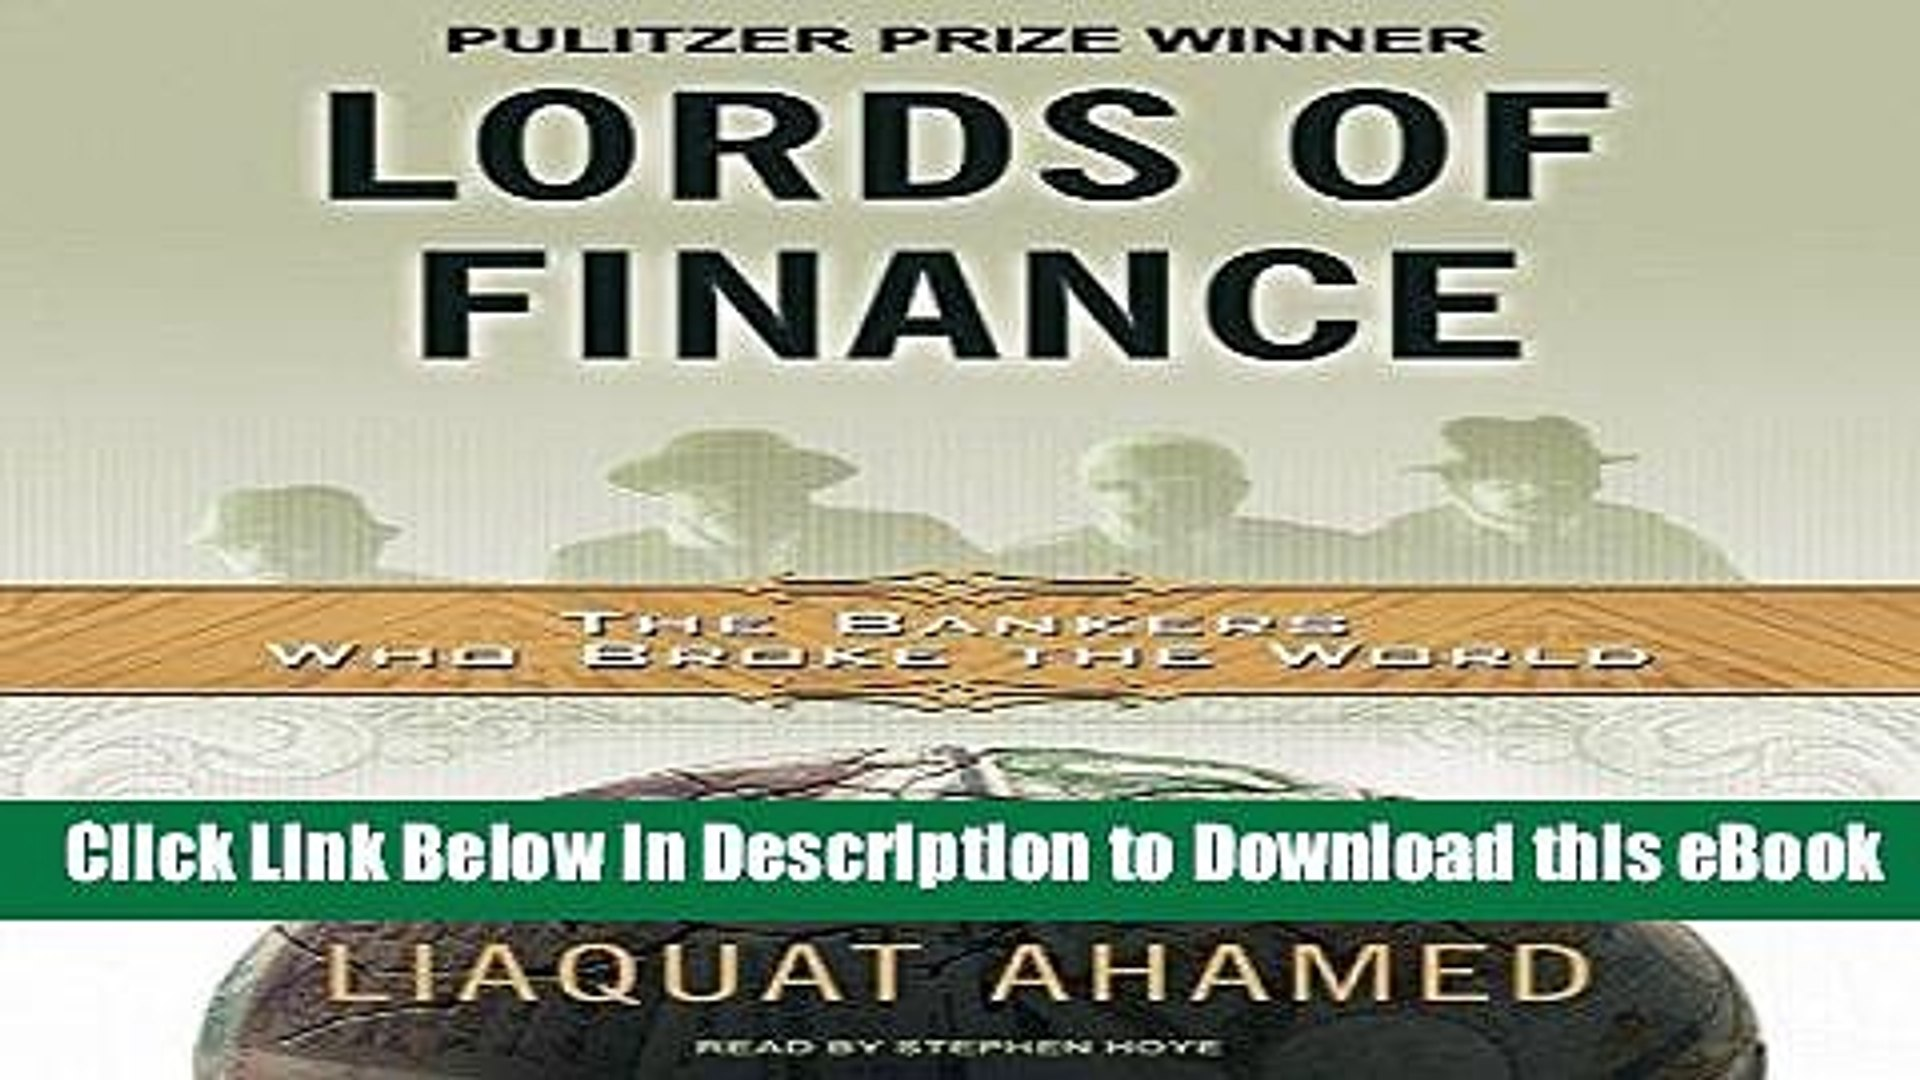 FREE [DOWNLOAD] Lords of Finance: The Bankers Who Broke the World [MP3 AUDIO] [UNABRIDGED] (MP3